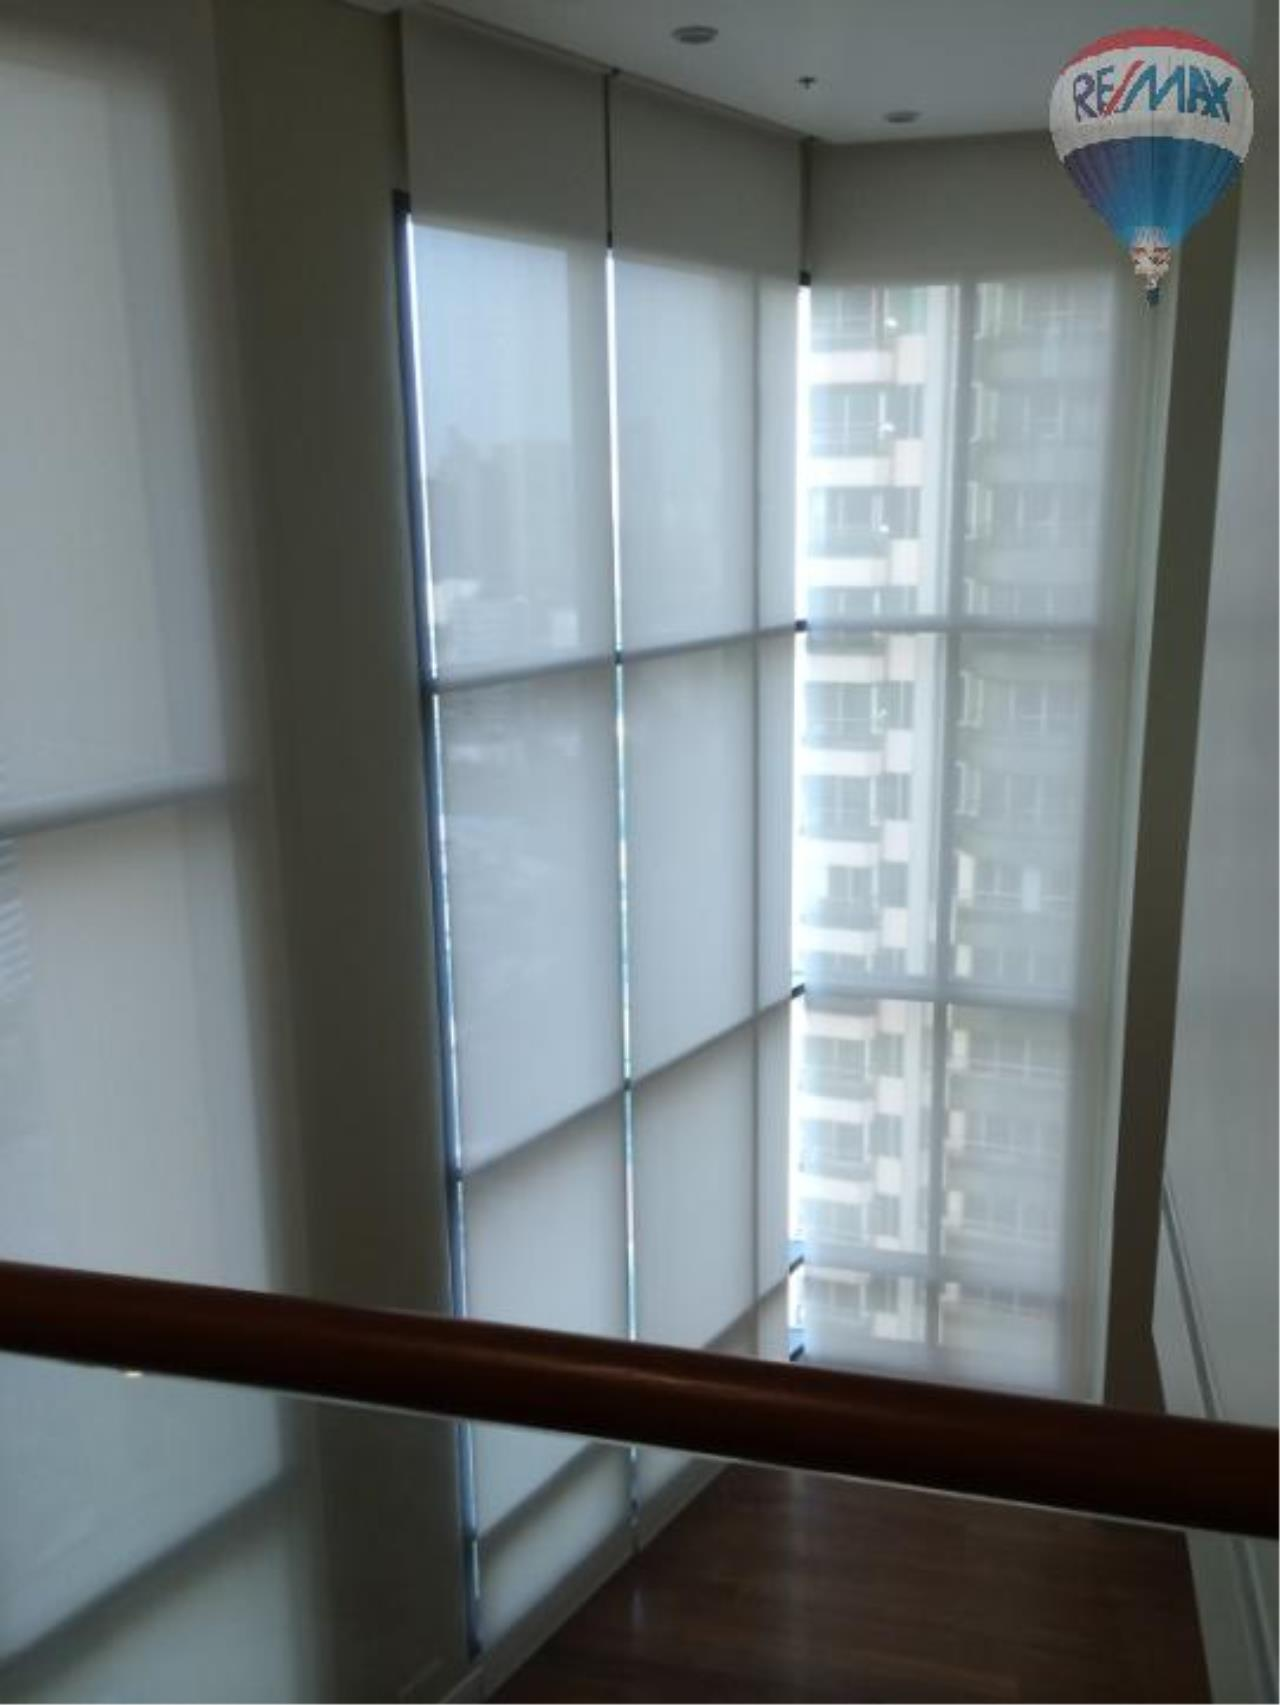 RE/MAX Properties Agency's 6 Bedroom 365 sq.m. for Rent at Bright Sukhumvit 24 13